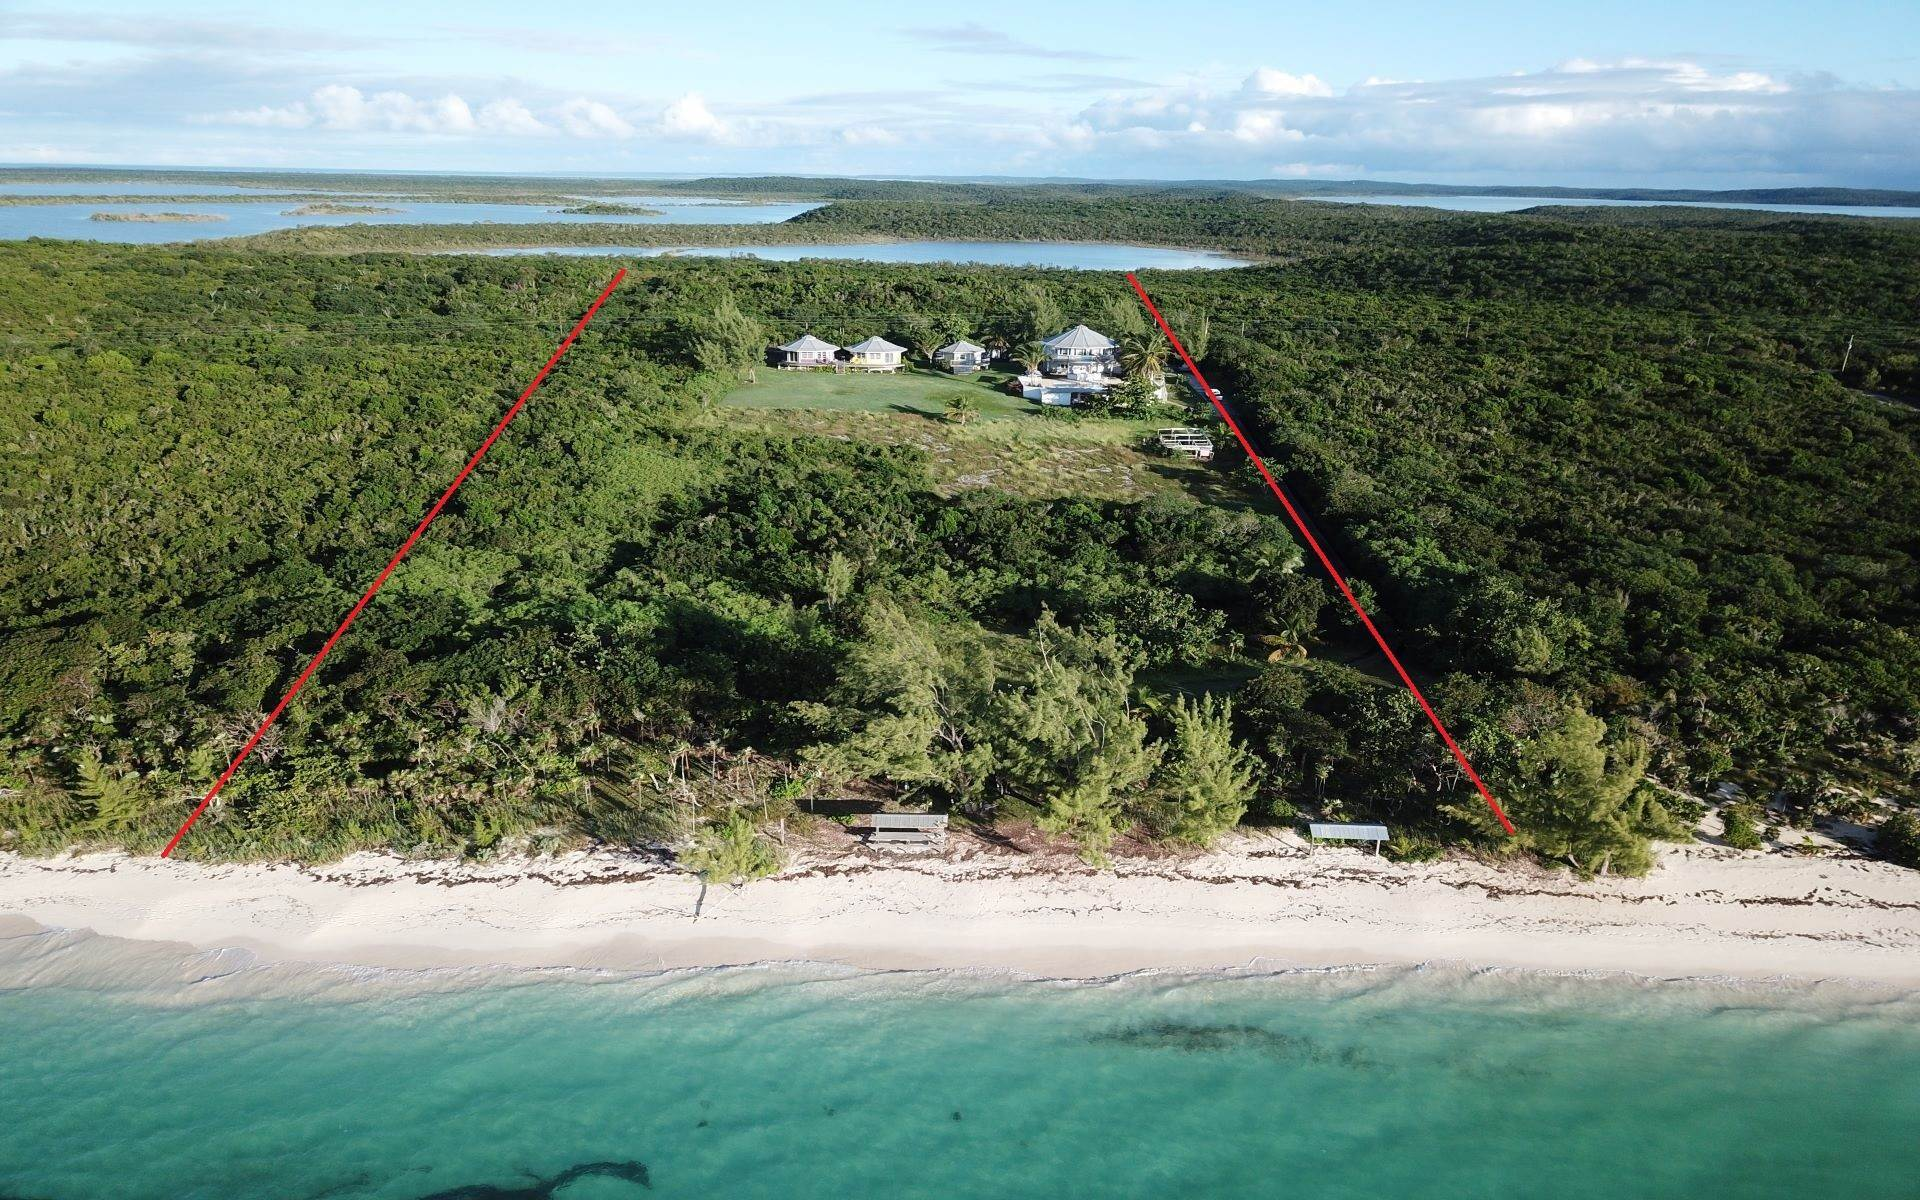 Commercial for Sale at Flamingo Bay Club, Cat Island - MLS 42750 Flamingo Bay, Cat Island, Bahamas